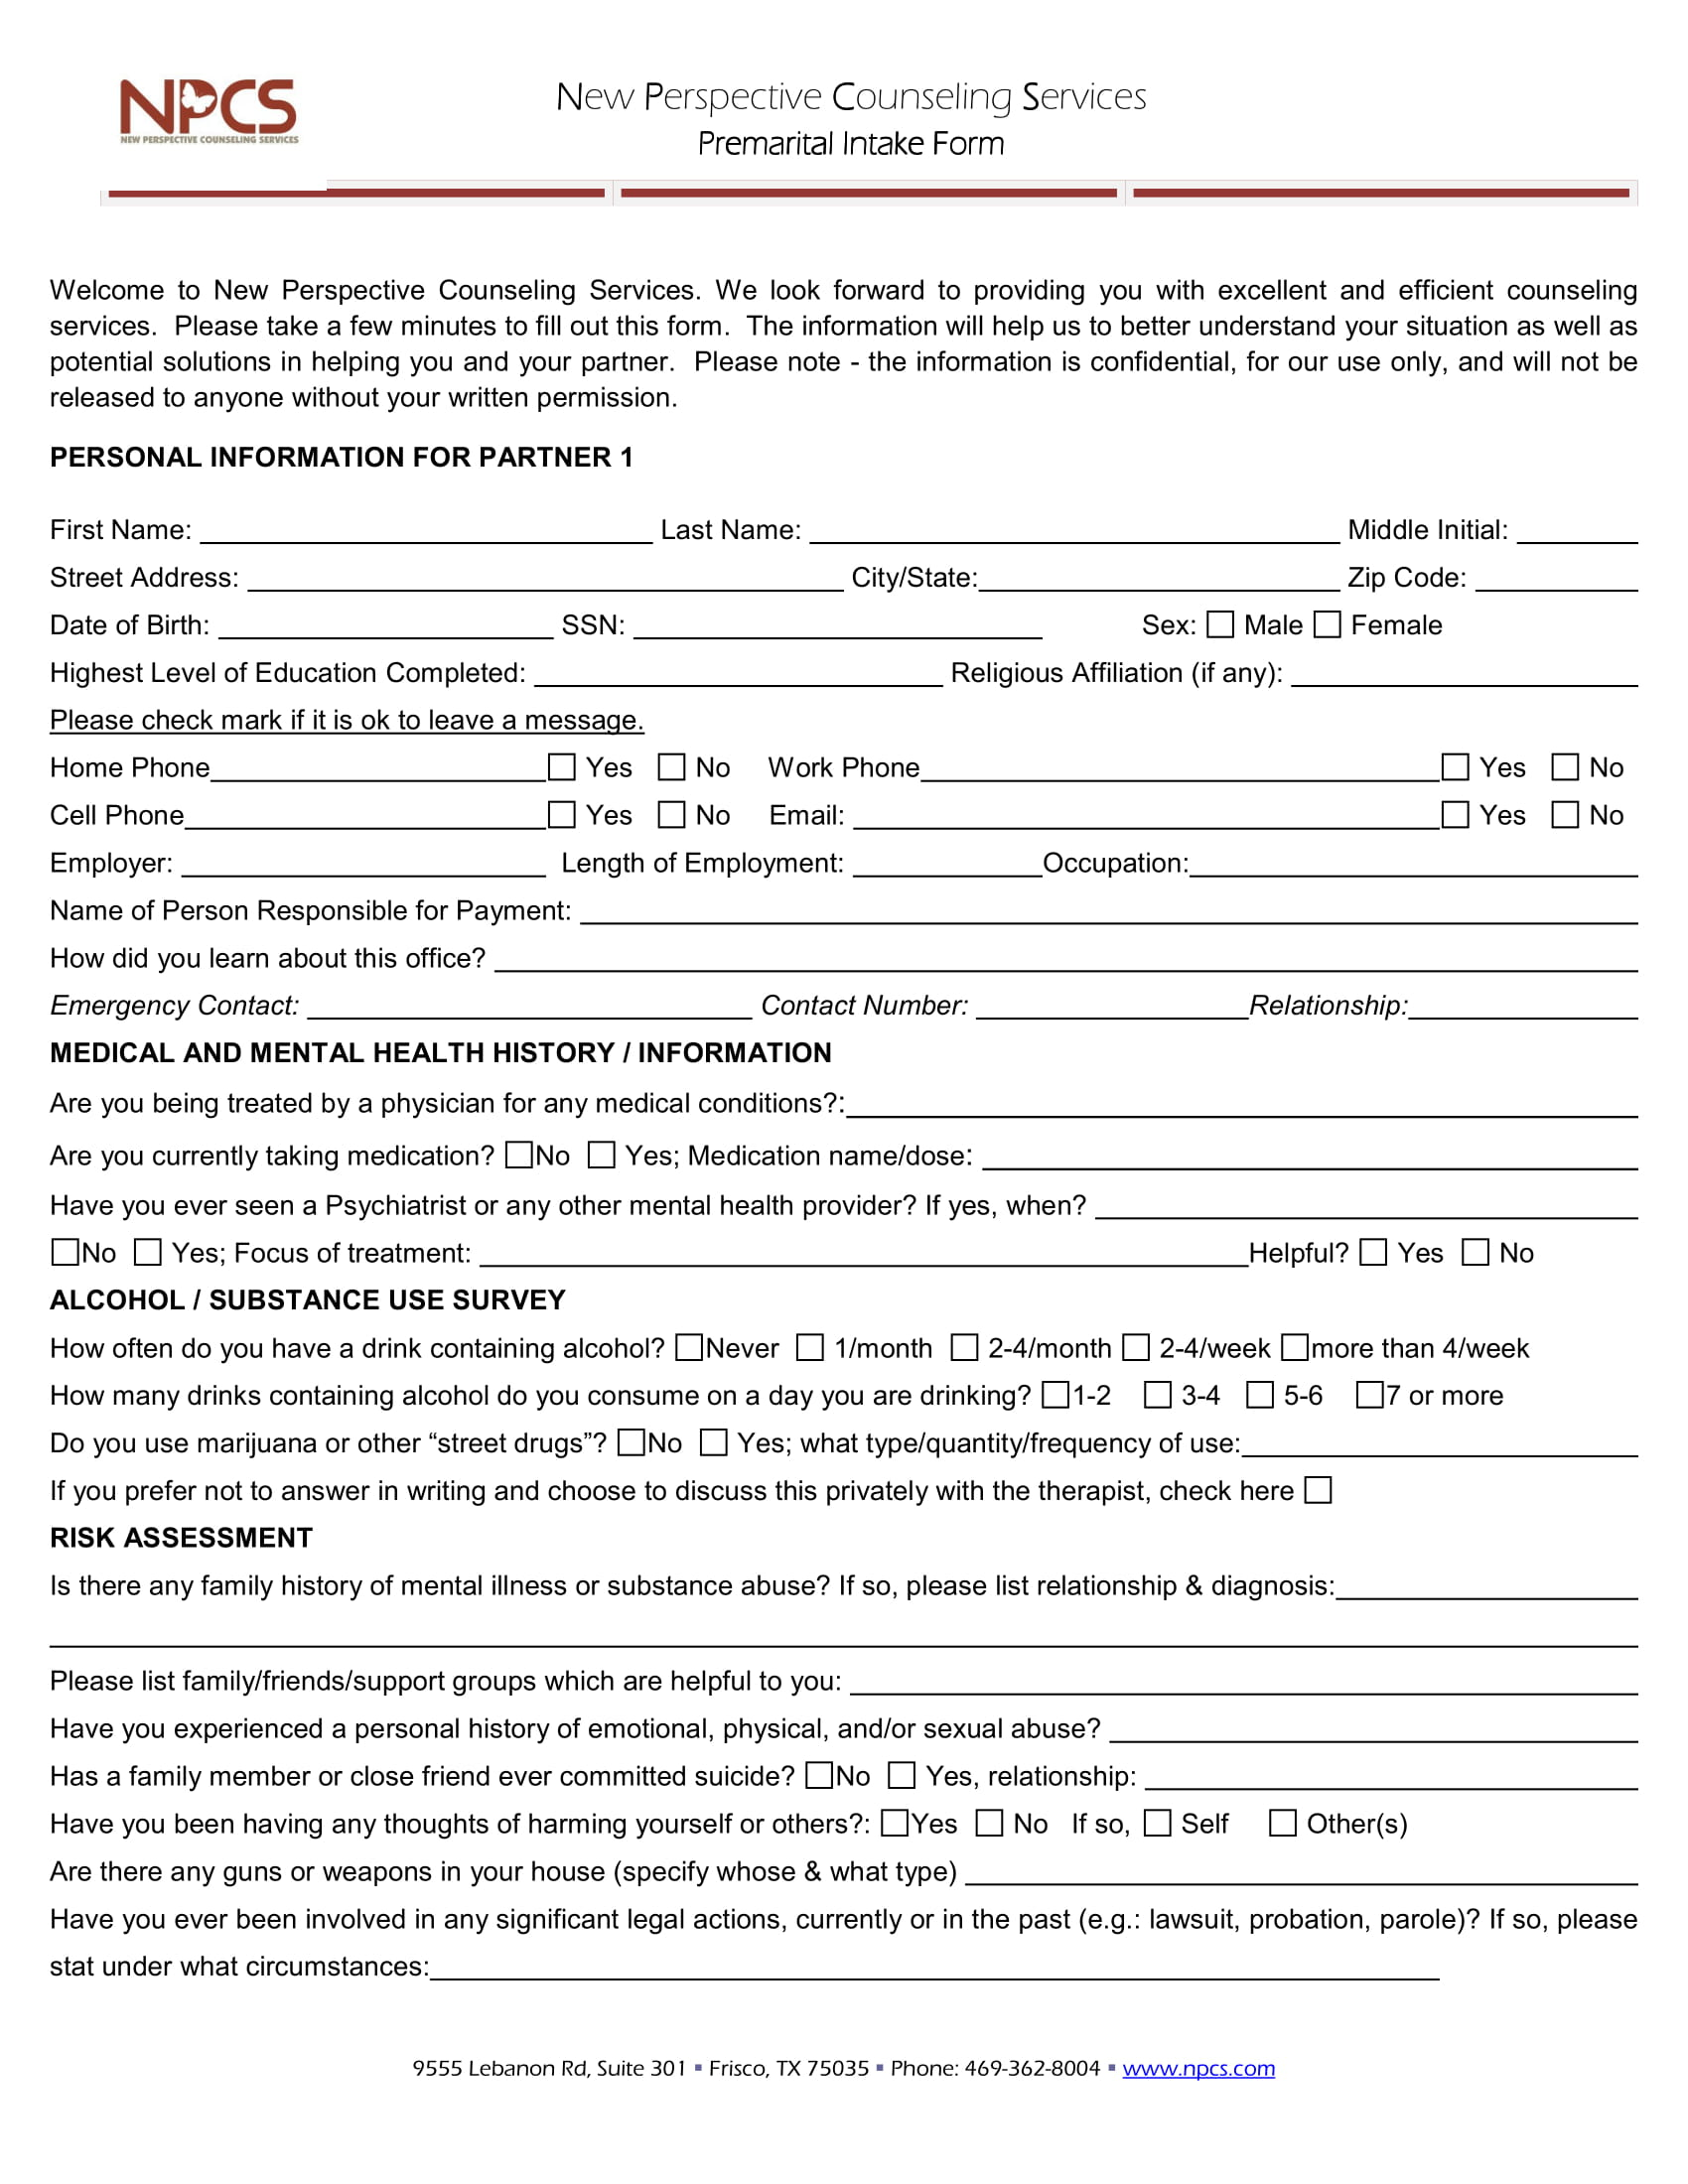 premarital counseling intake form 1